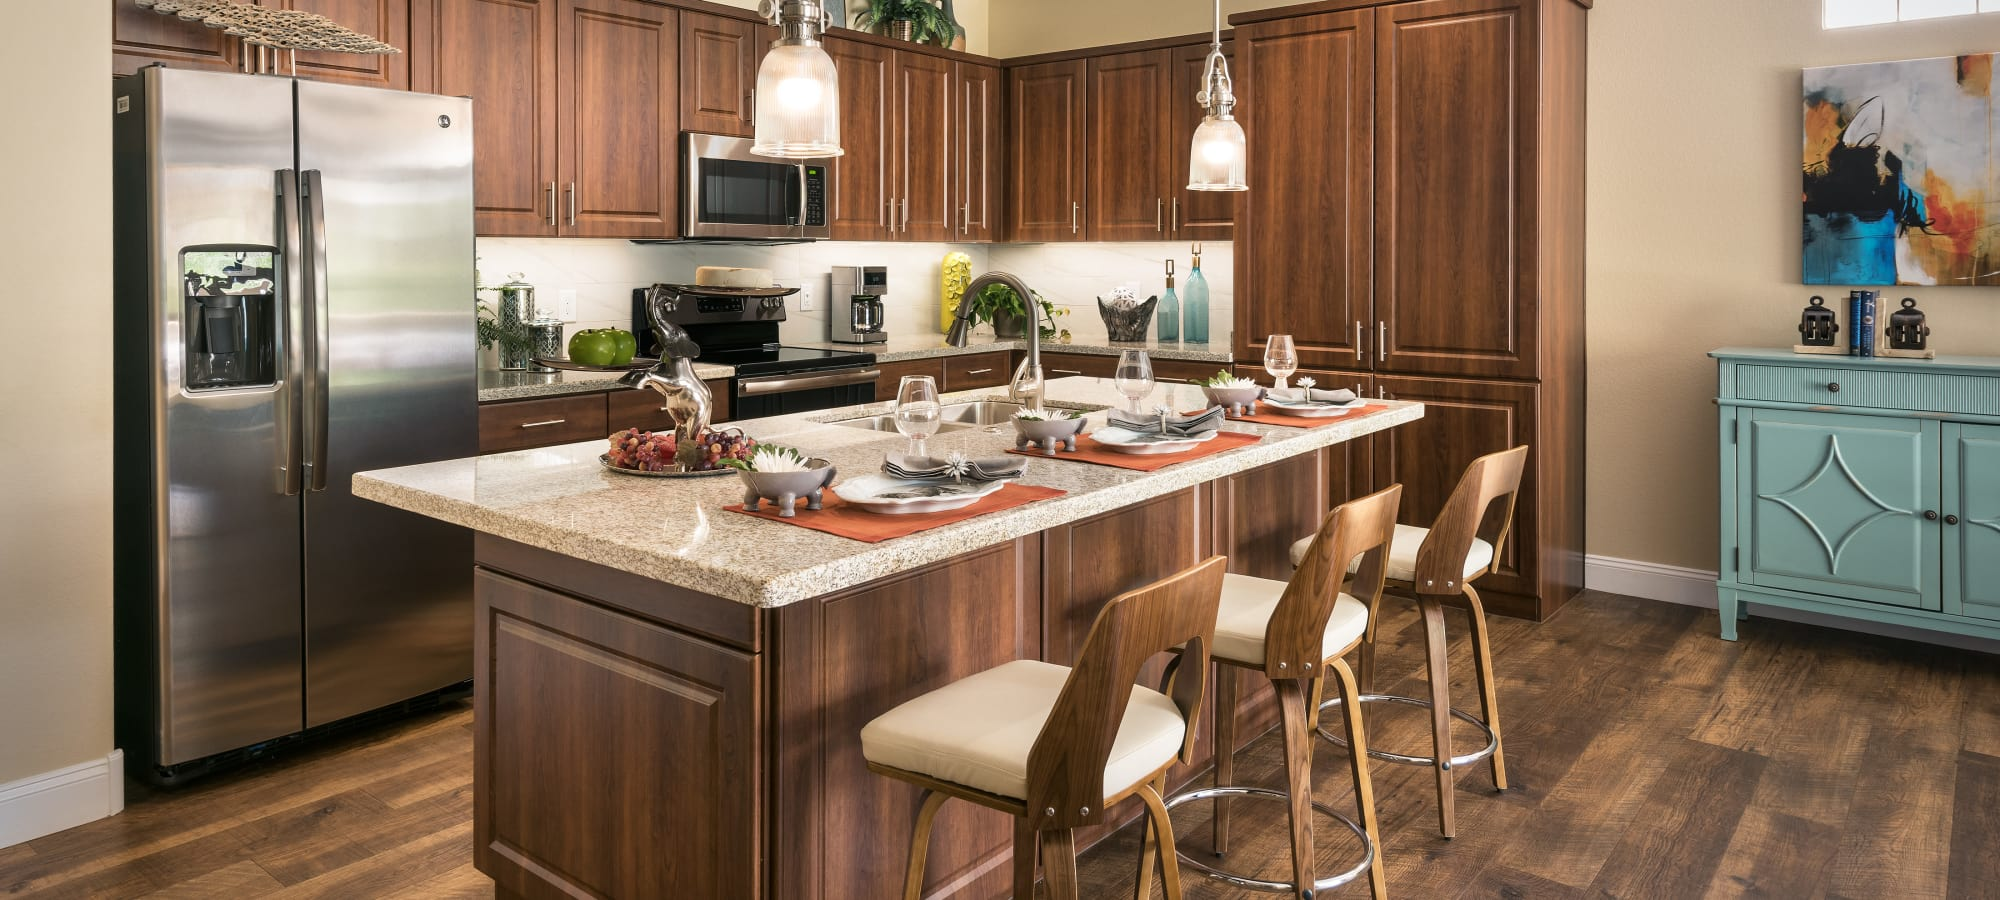 State-of-the-art kitchen with lovely island at San Portales in Scottsdale, Arizona